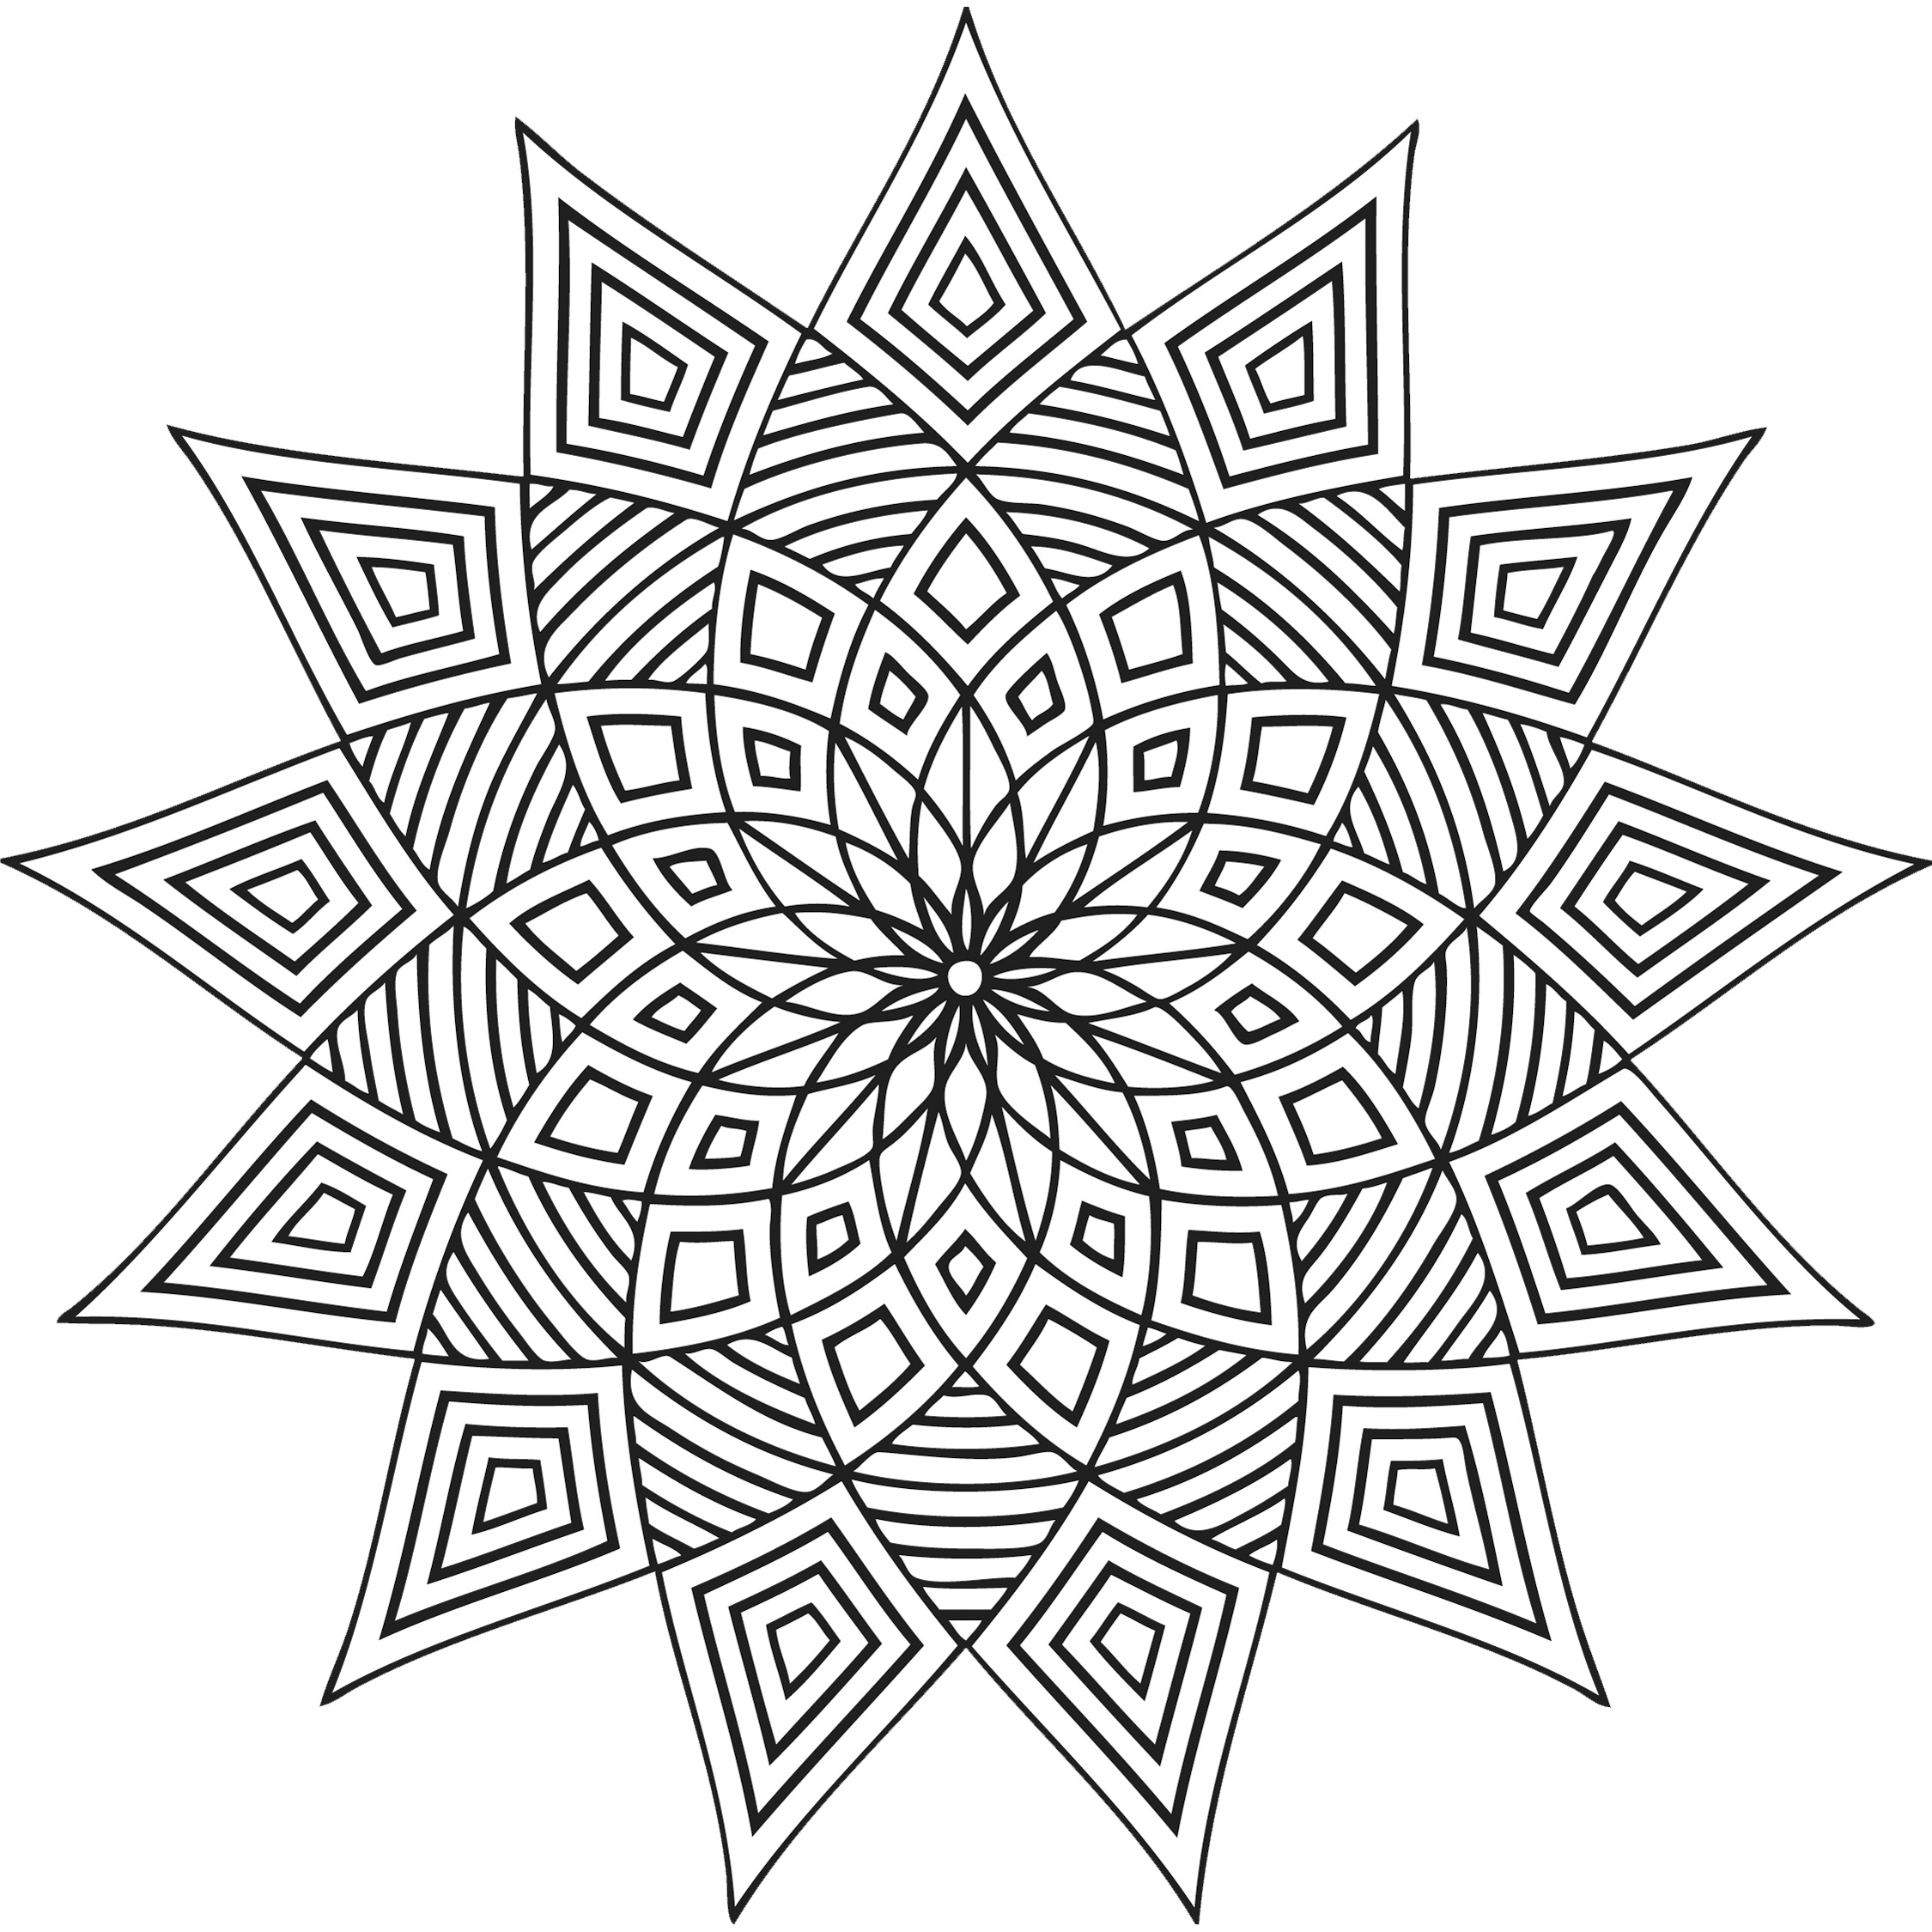 pattern colouring pages to print free printable geometric coloring pages for adults to colouring print pattern pages